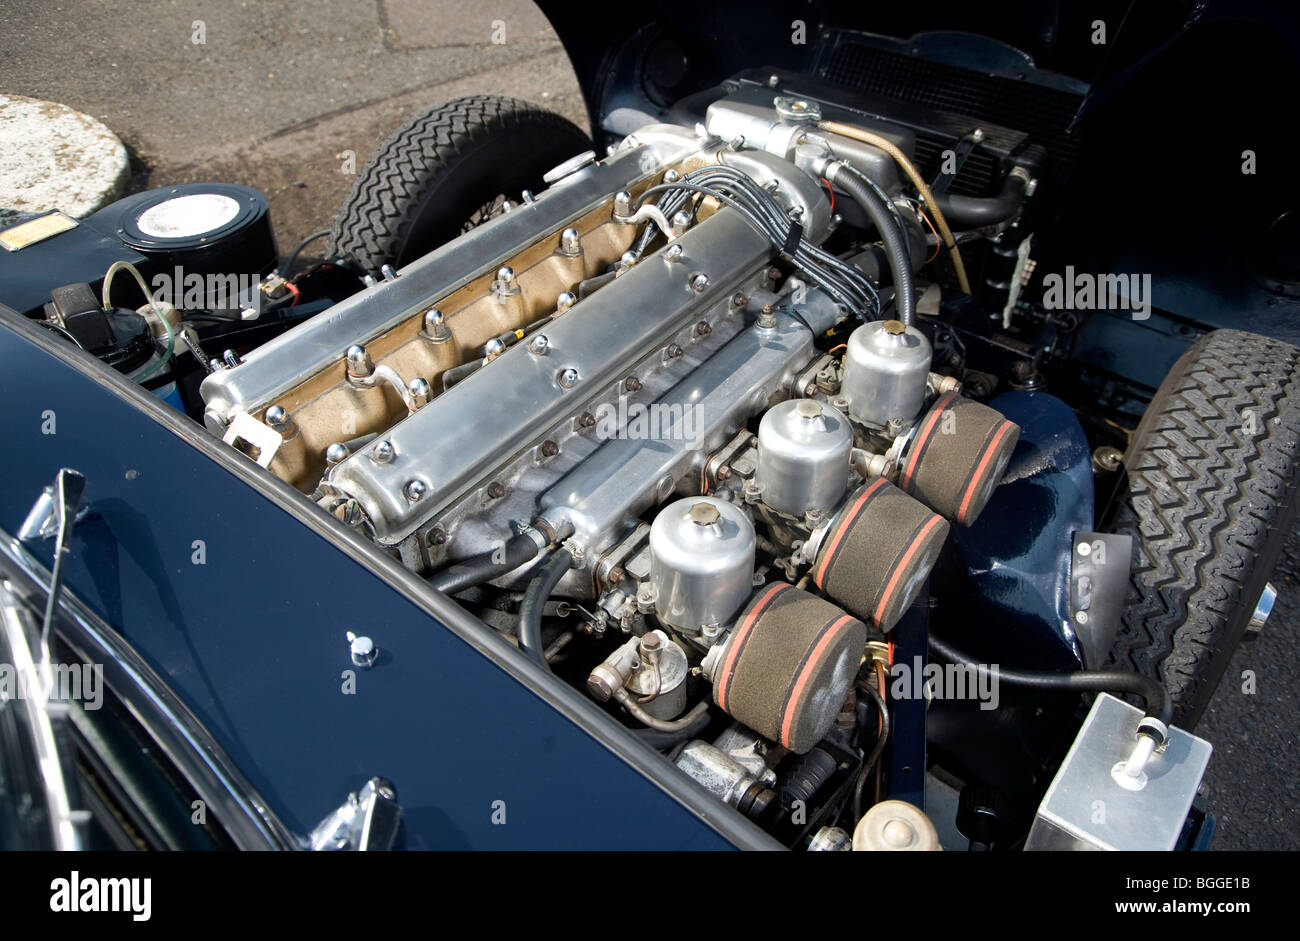 Straight 6 Engine Stock Photos & Straight 6 Engine Stock Images - Alamy